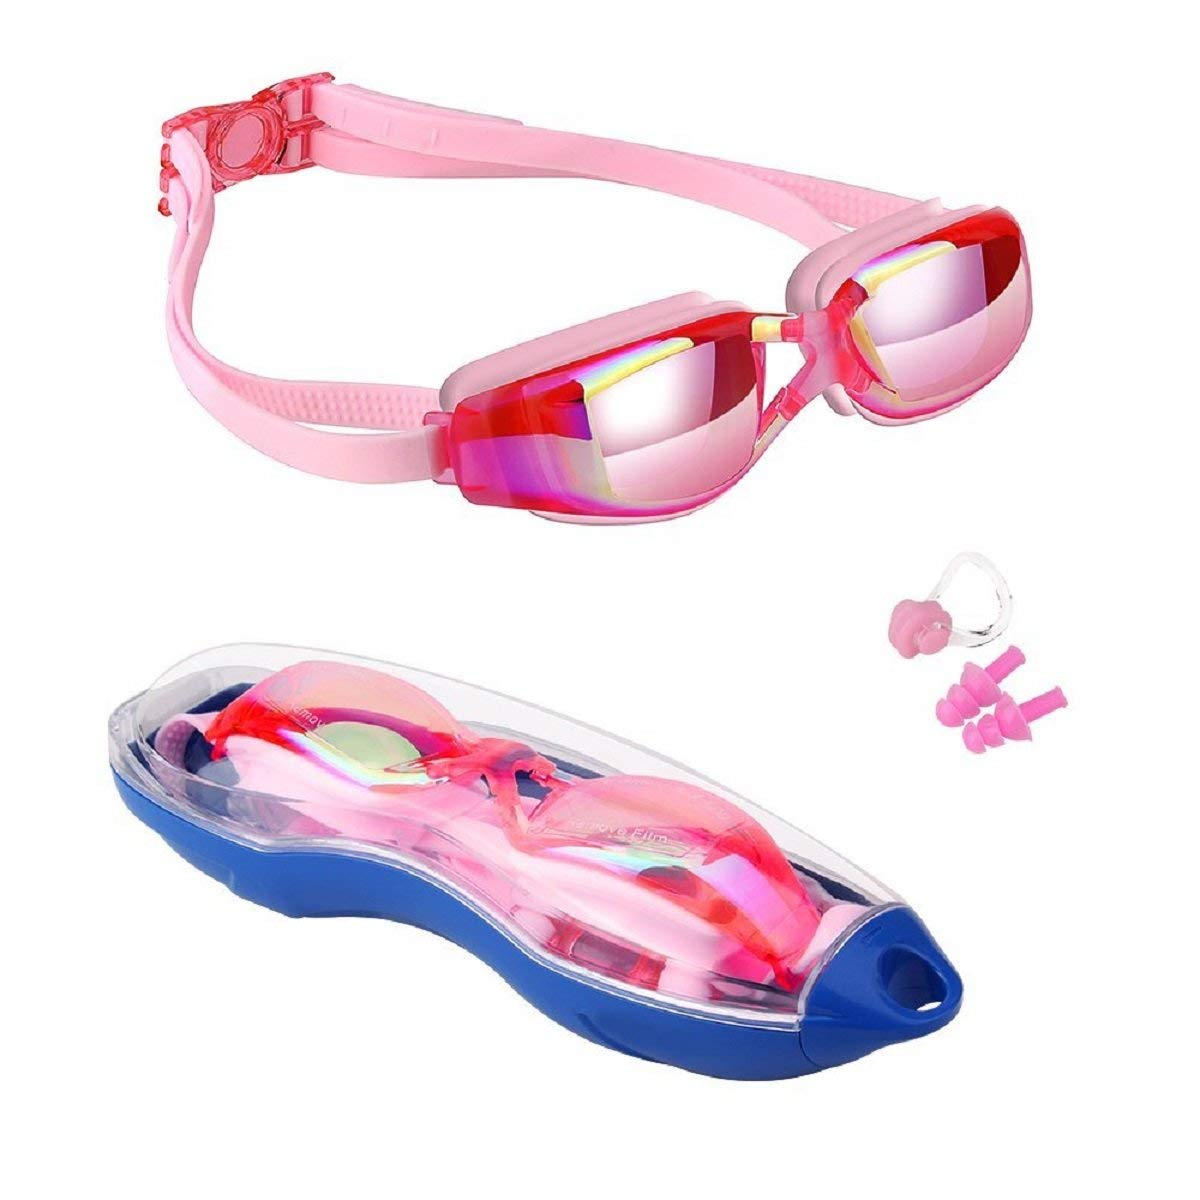 7c444b7e4e00 Get Quotations · Smiley-Store Swim Goggles No Fog Swimming Goggles No  Leaking Anti Fog UV Protection Swim